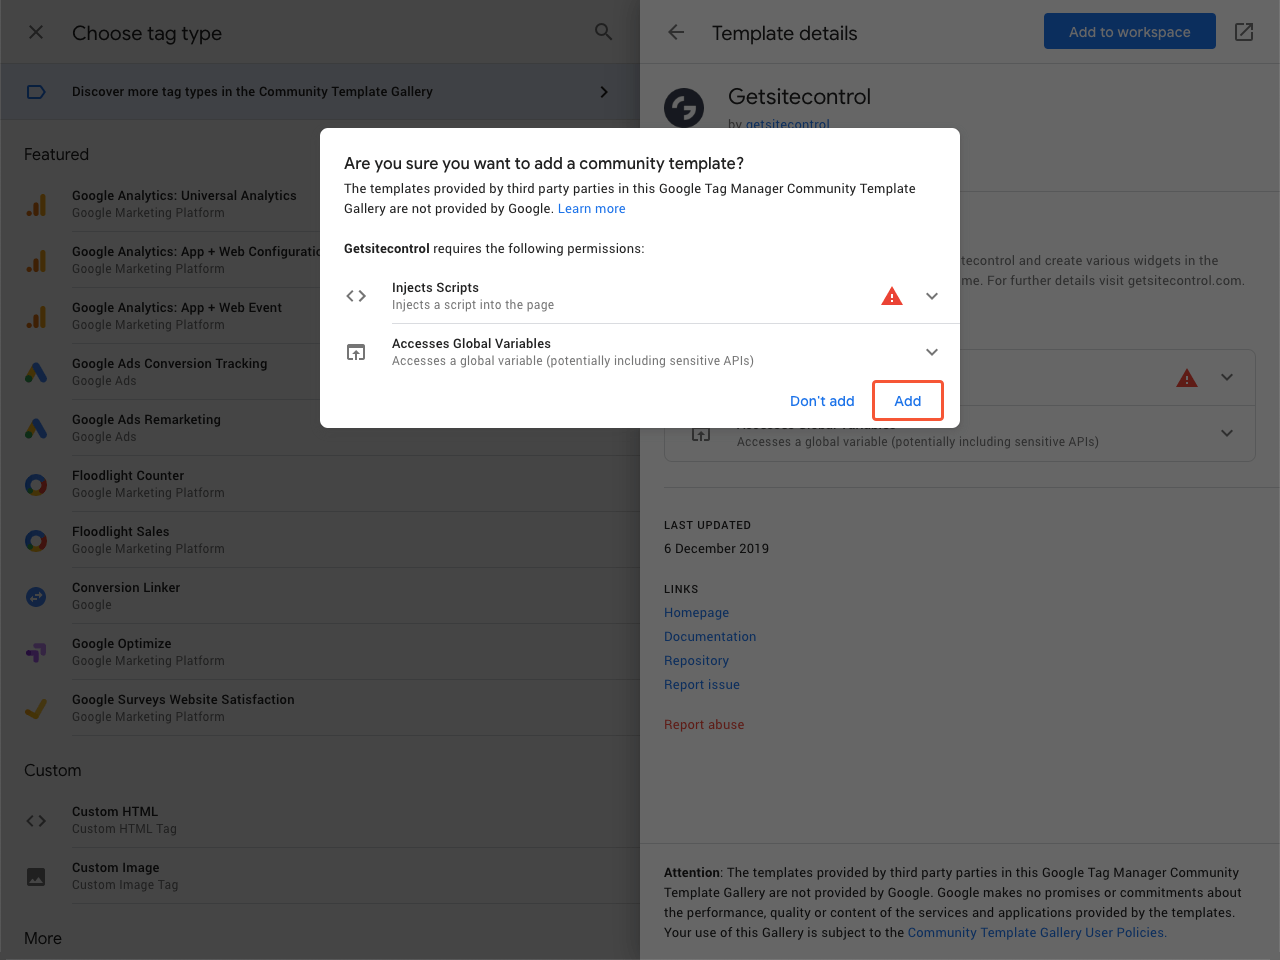 Google Tag Manager confirmation modal window